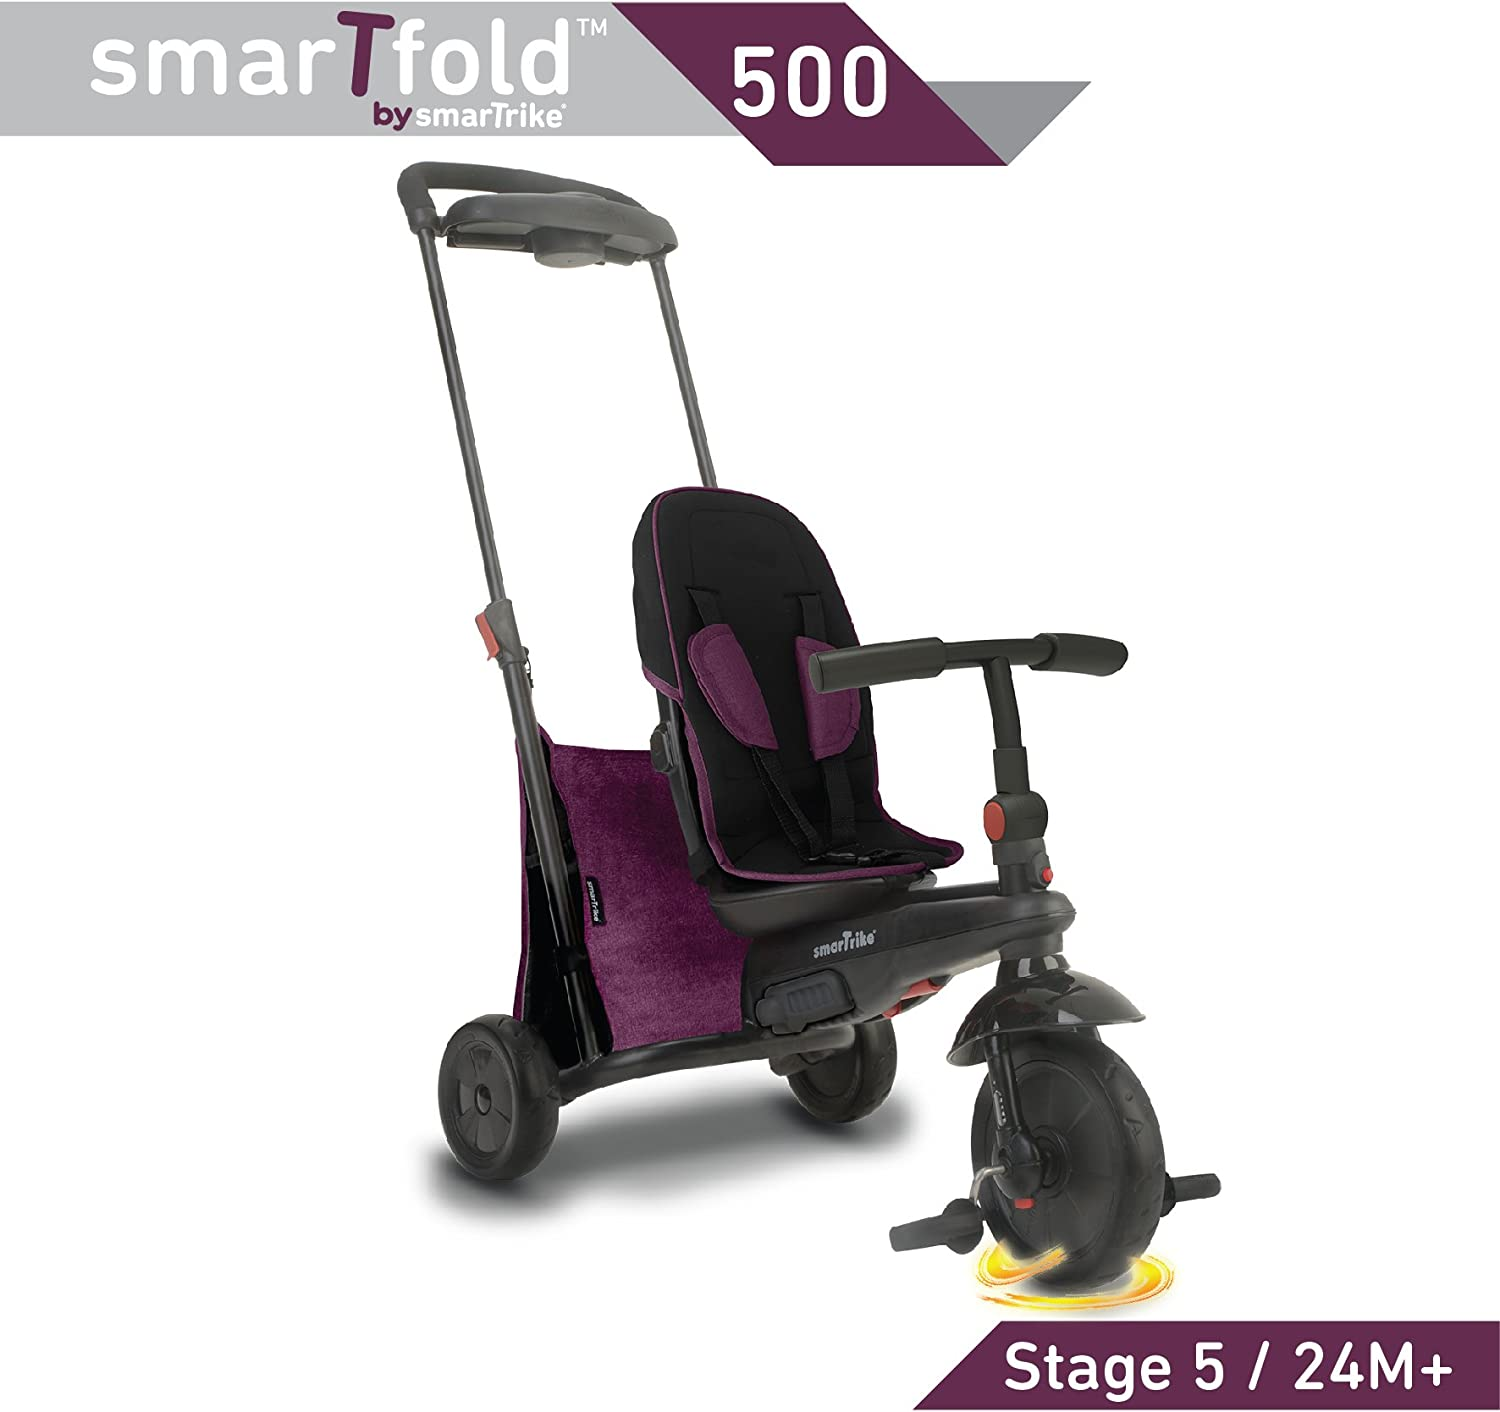 smarTrike smarTfold 500 Folding Baby Tricycle for 1 Year Old, Purple